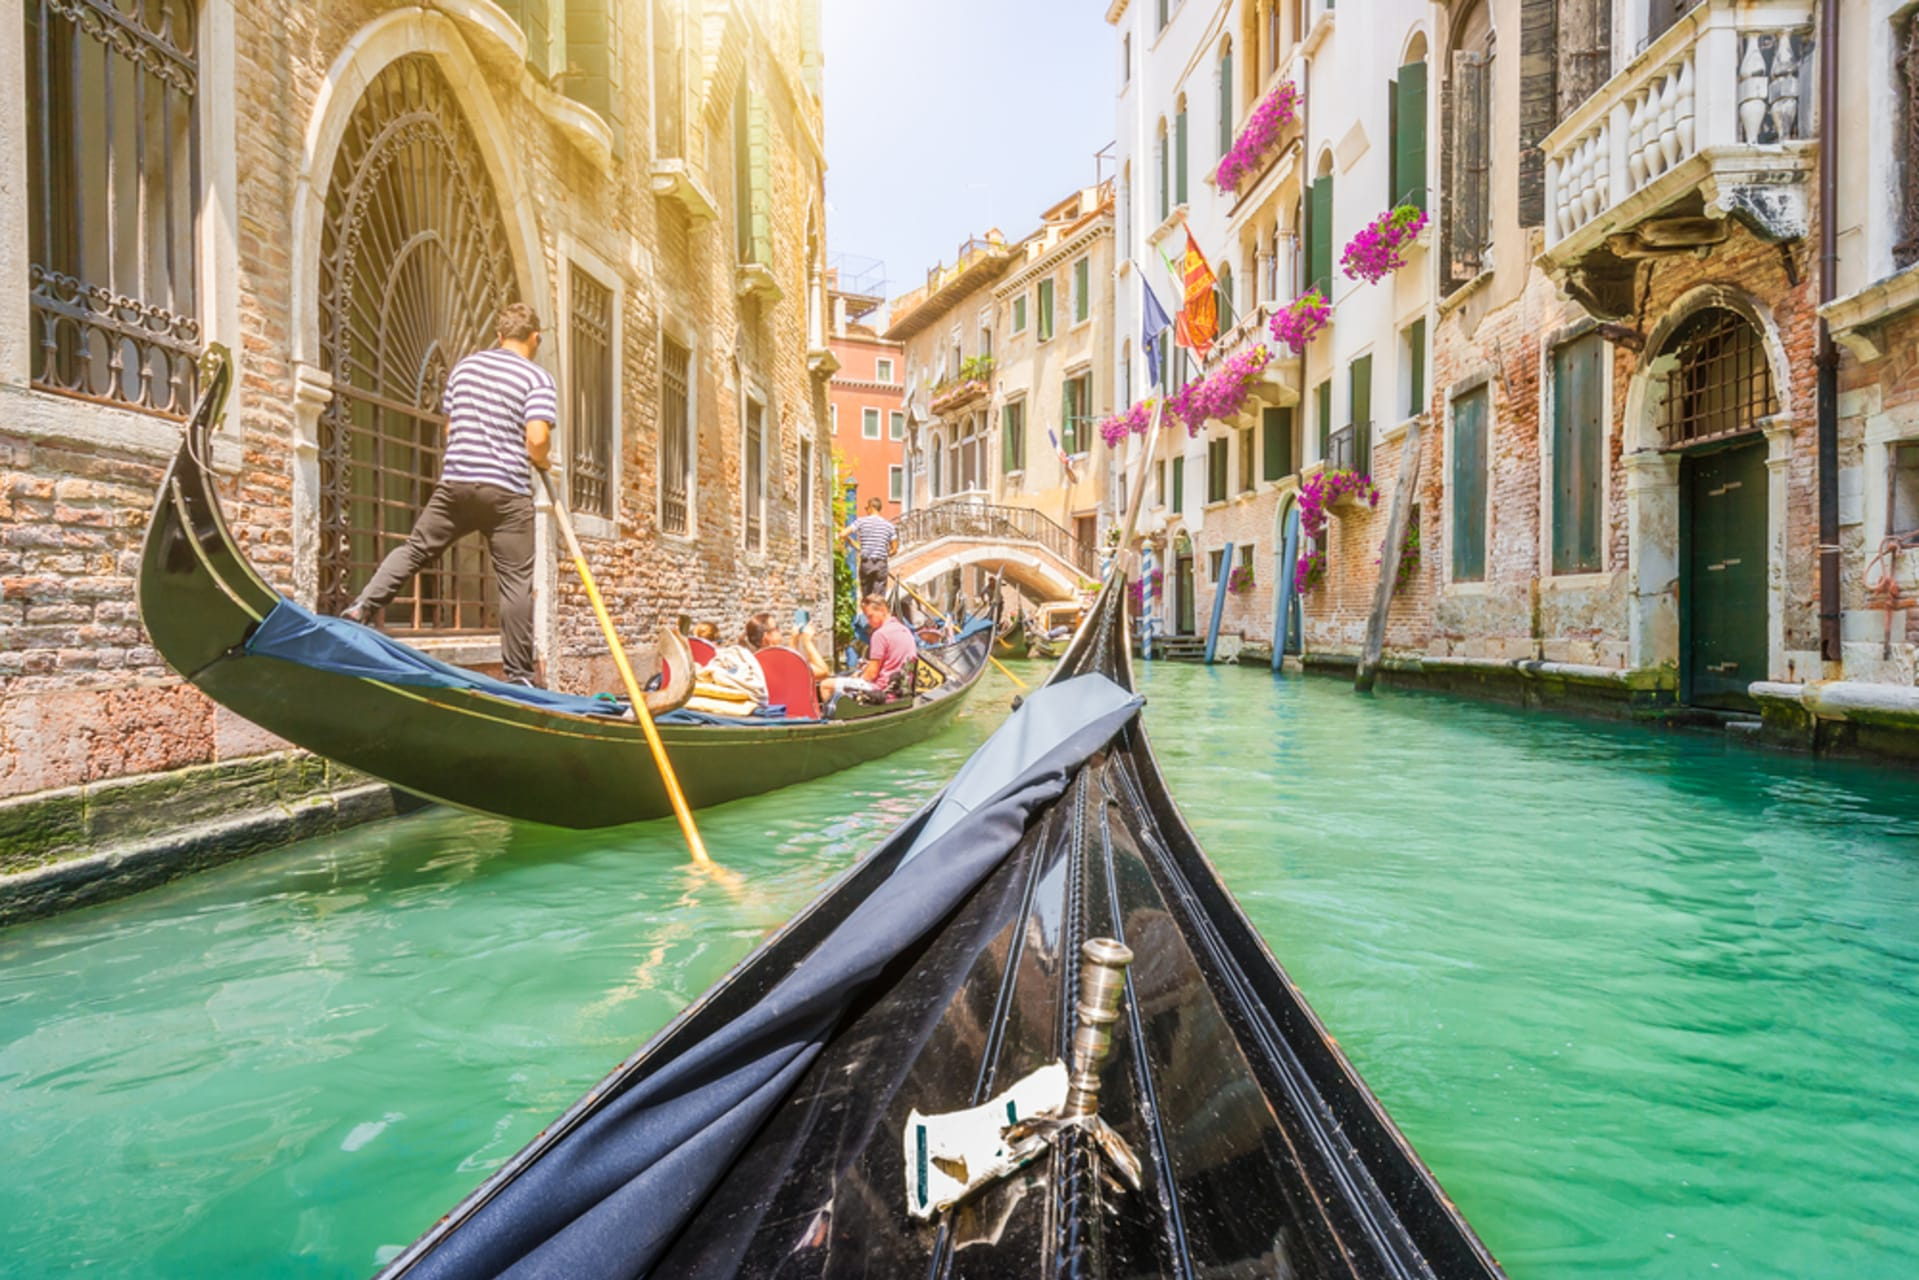 Venice - Romantic Gondola Ride Along The Grand Canal & The Small Canals